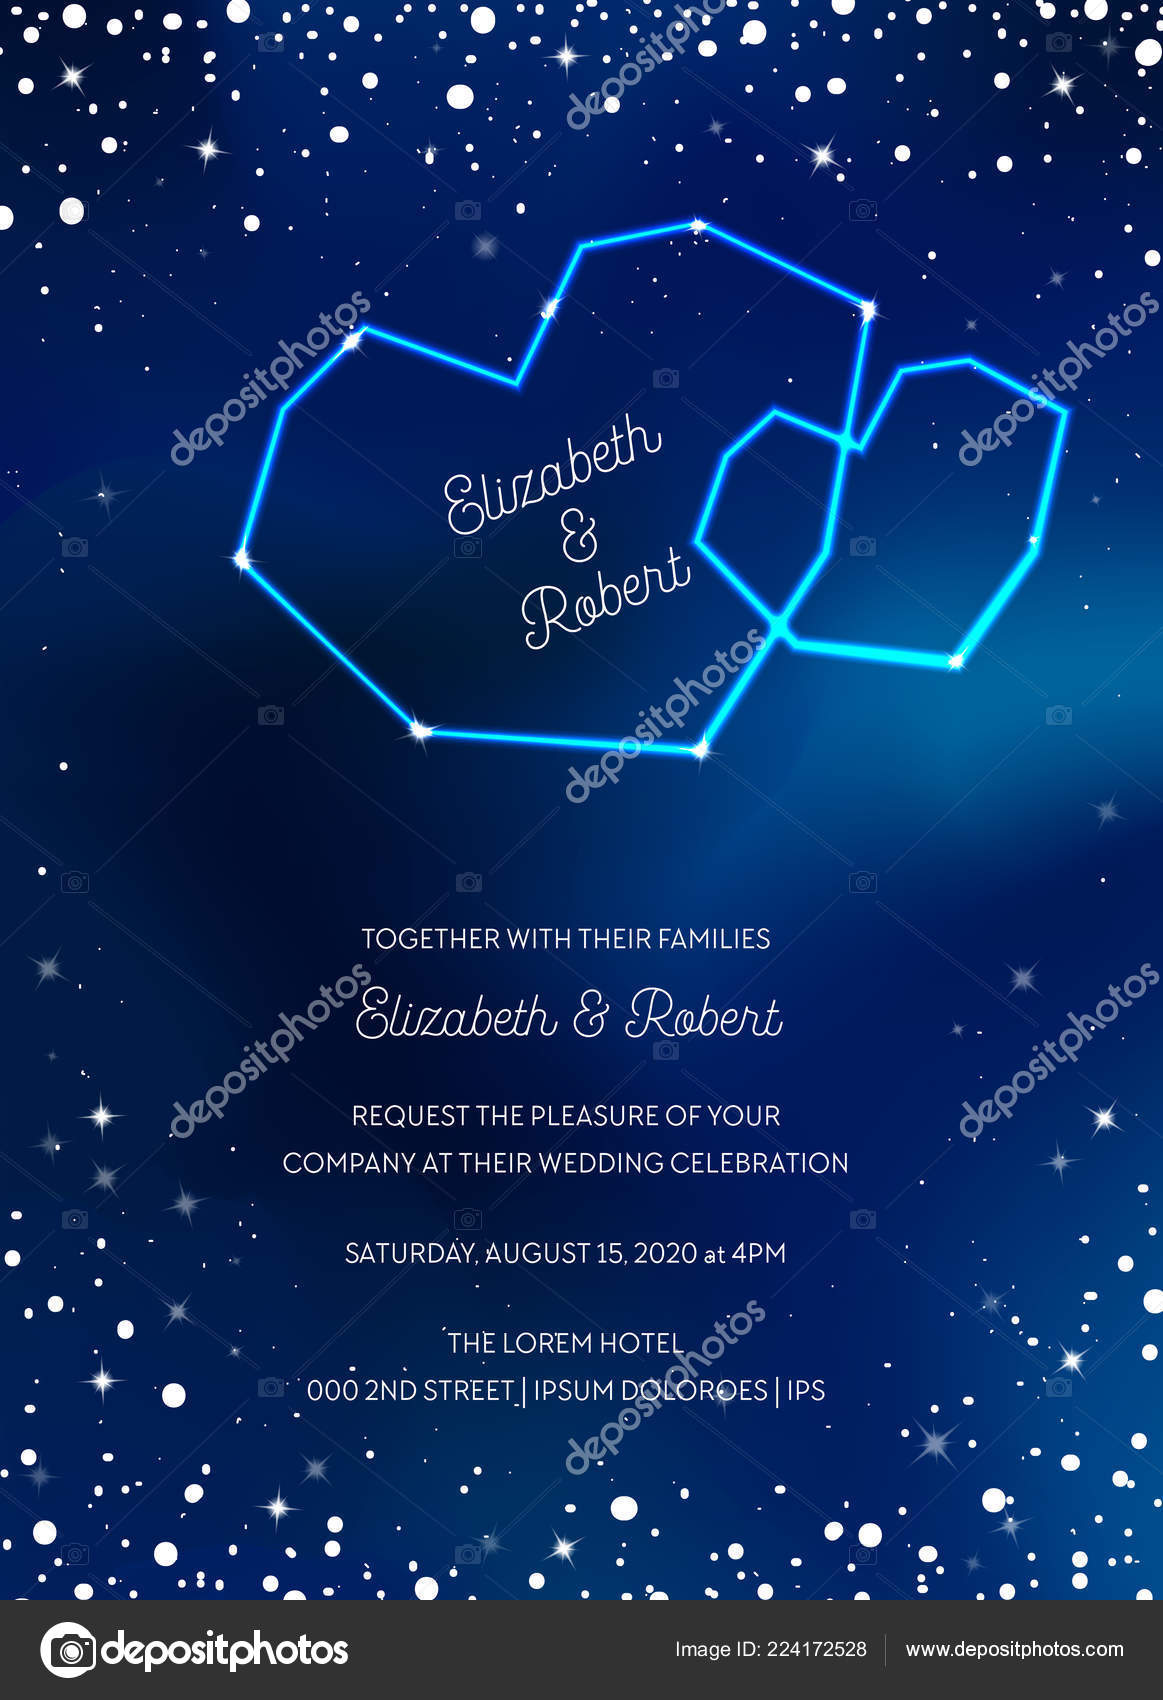 Night Sky Trendy Wedding Invitation Card Save The Date Celestial Template With Moon Stars: Blue Moon Wedding Invitations At Websimilar.org